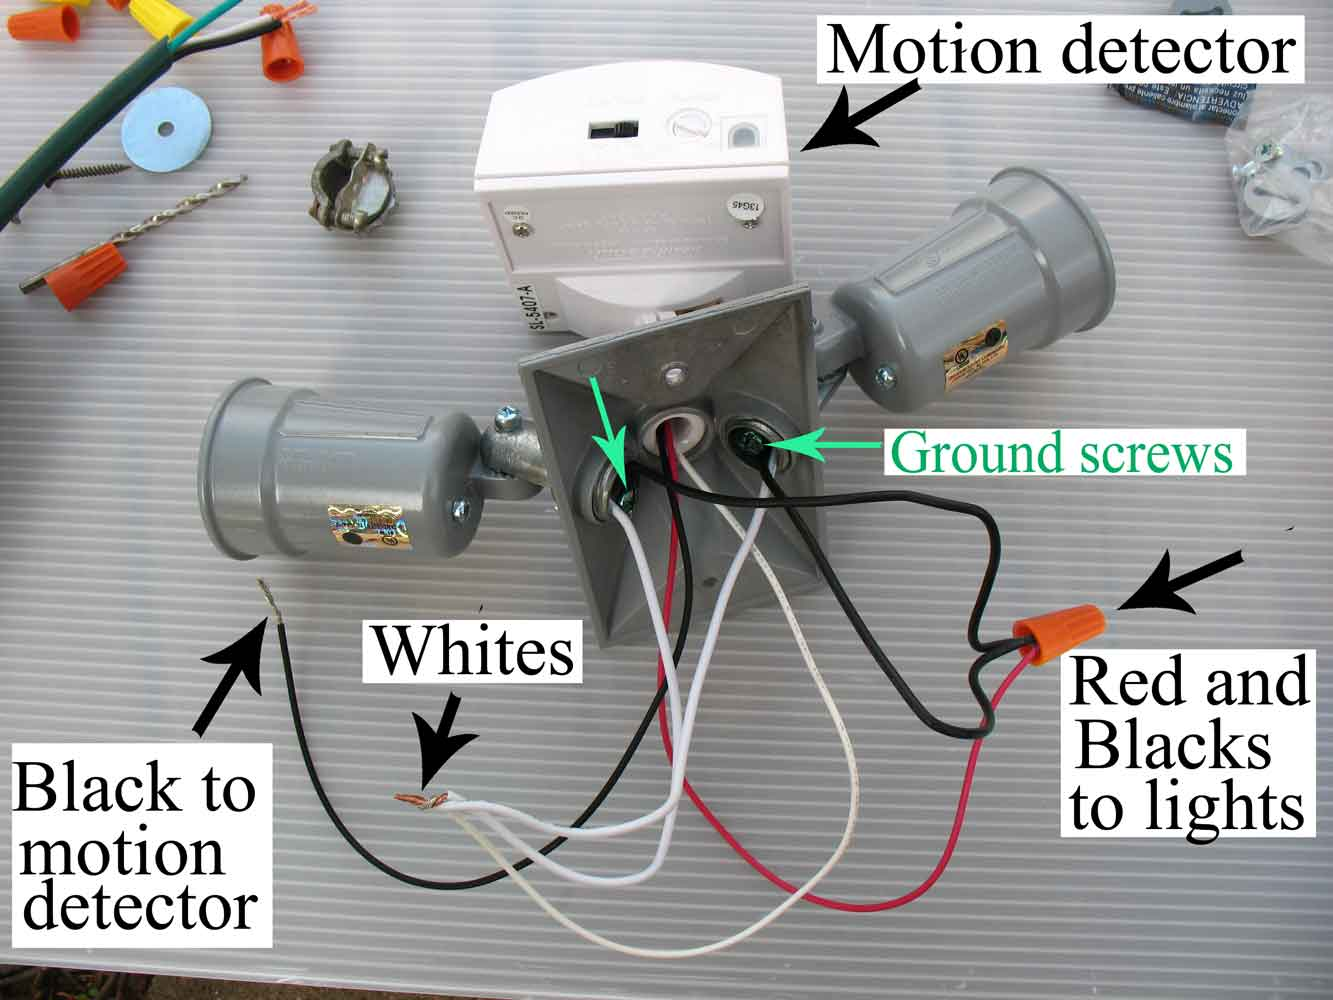 IMG_0014 Motion detector how to wire motion sensor occupancy sensors wiring diagram for motion sensor at bakdesigns.co